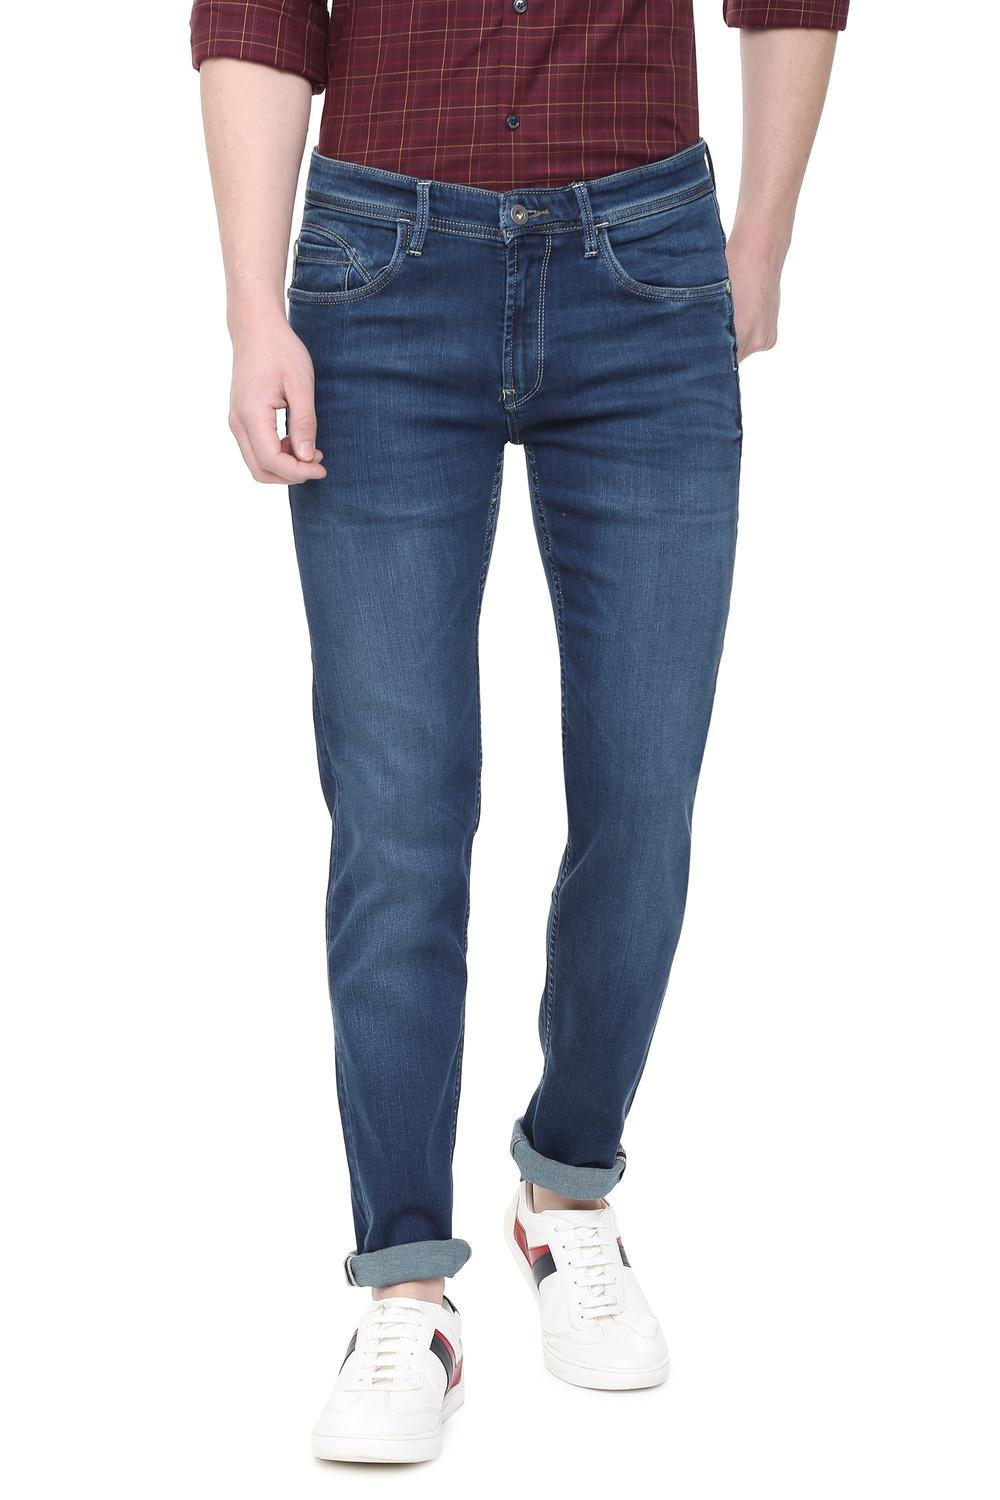 ff2deaa4e85 Solly Jeans Co Jeans, Allen Solly Blue Jeans for Men at Allensolly.com